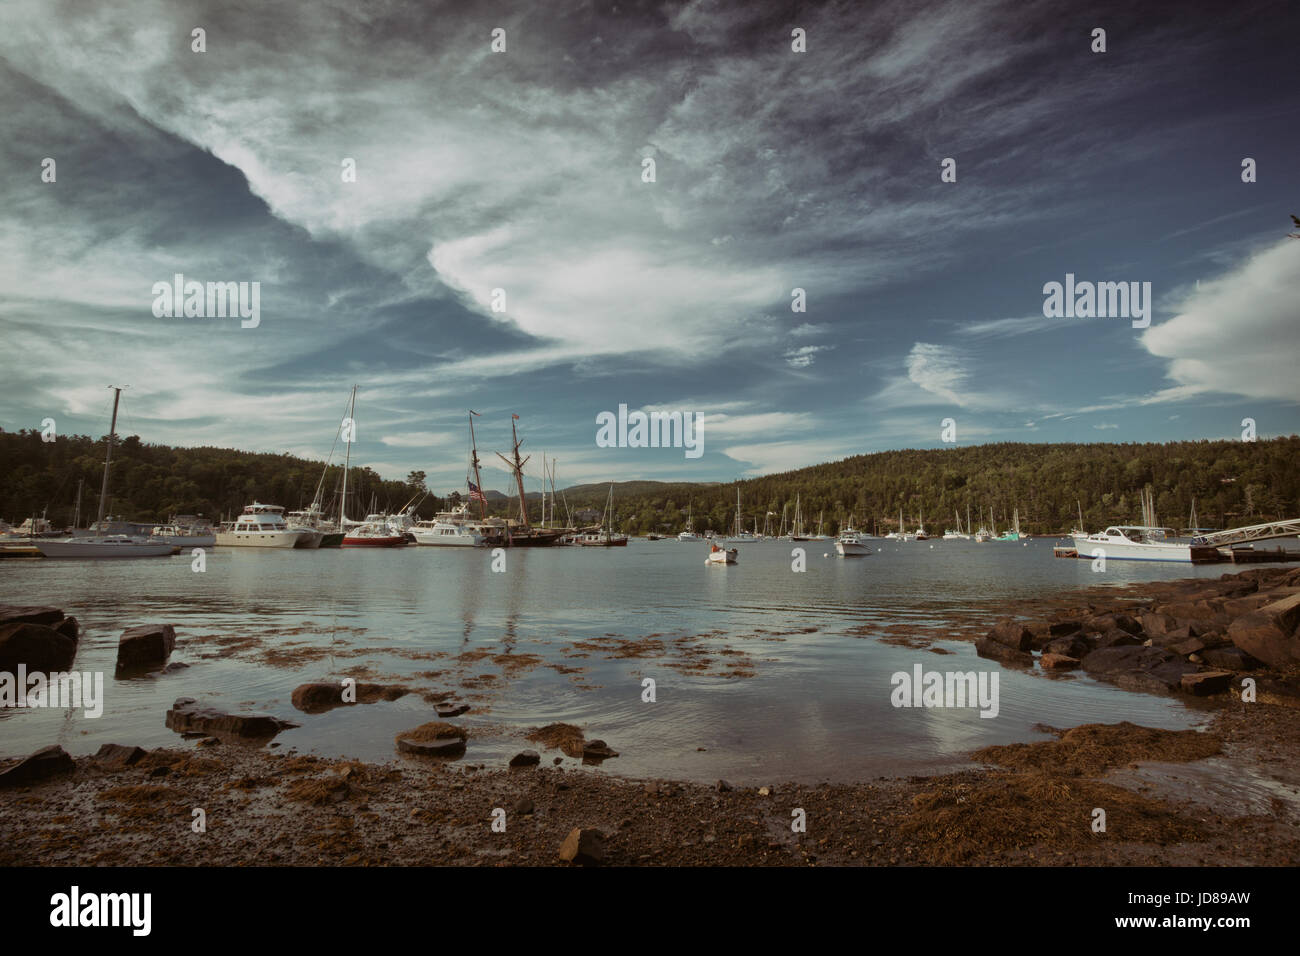 Boats lay idle in Northeast Harbor on Mount Dessert Isle in Maine. - Stock Image